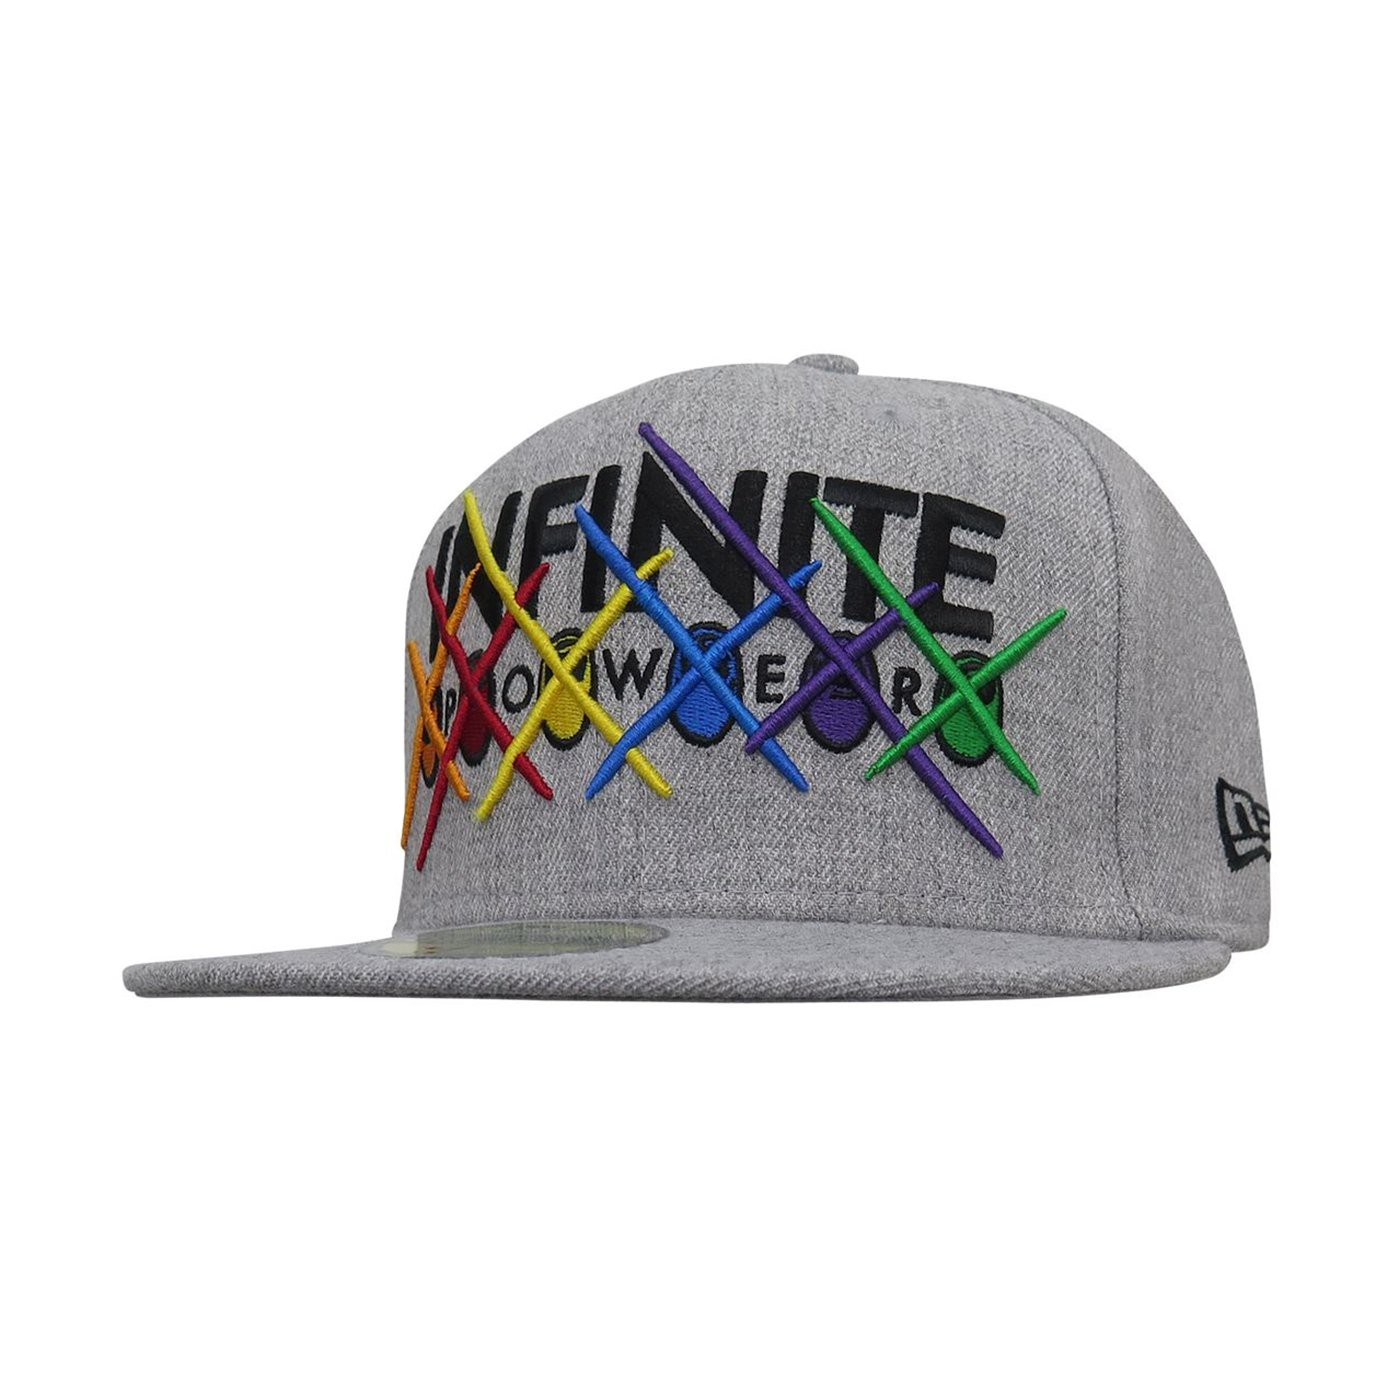 Infinity War Infinite Power 59Fifty Fitted Hat